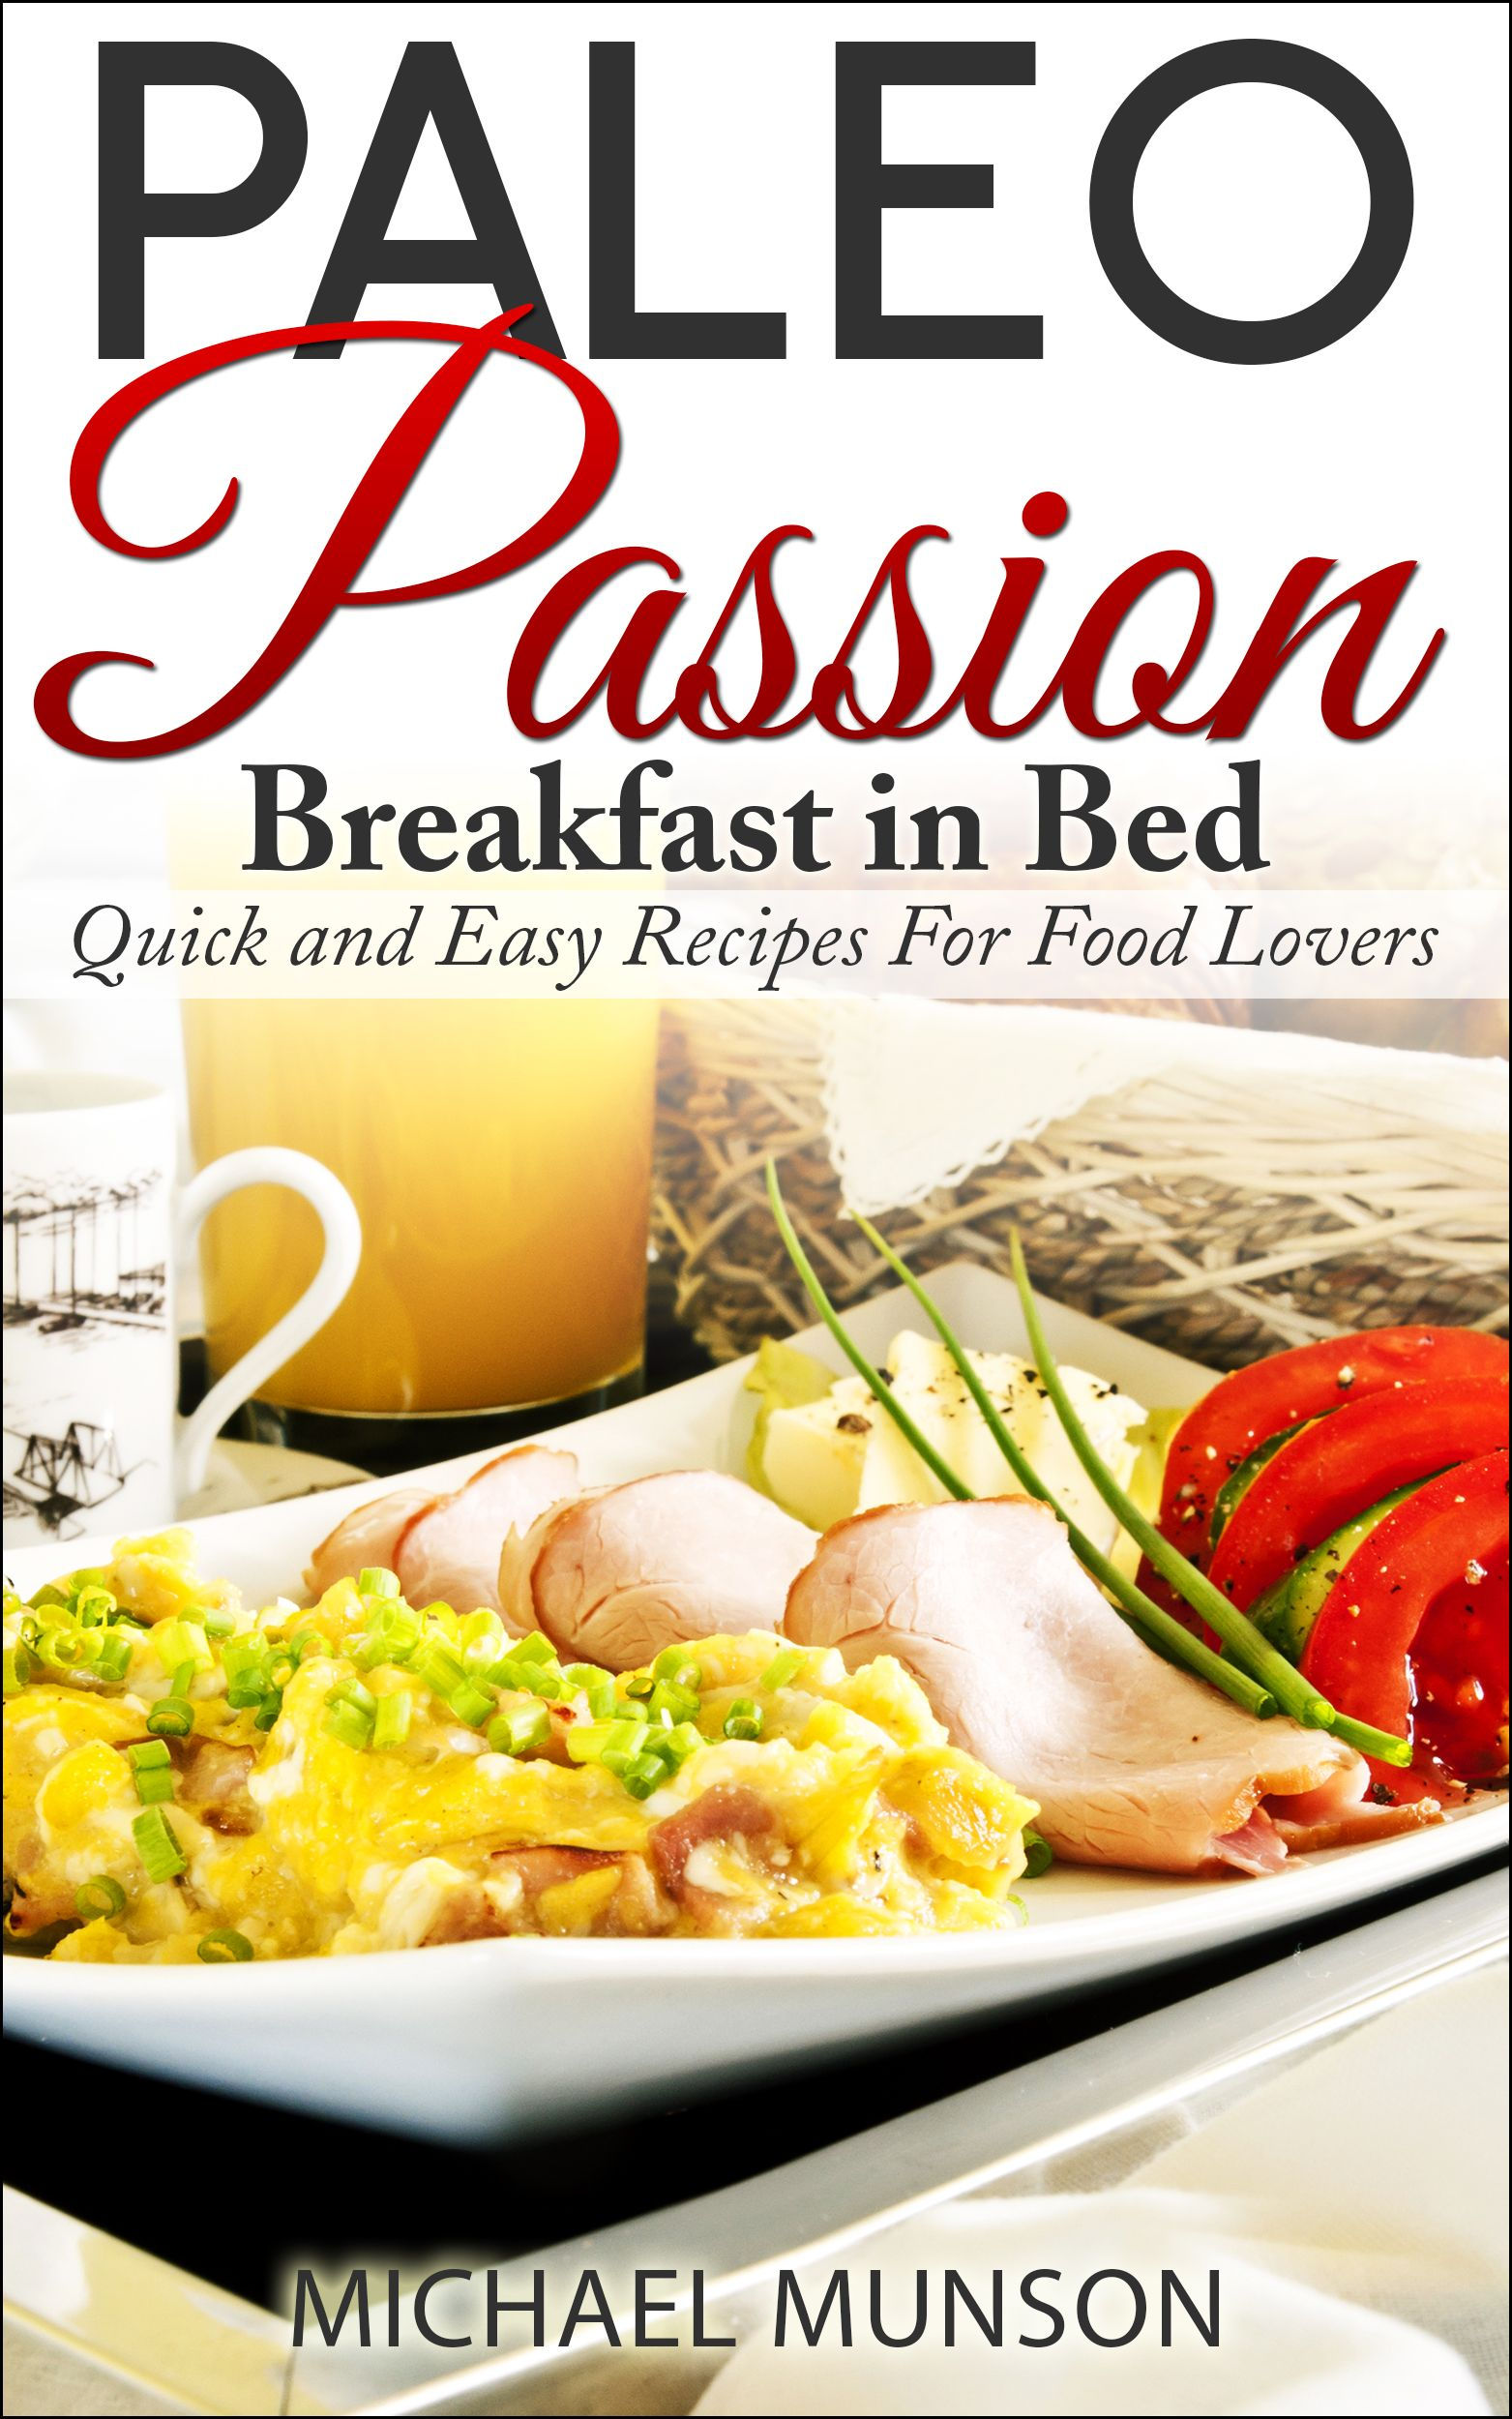 My latest book paleo passion breakfast in bed quick and easy health benefits of paleo eating paleo passion breakfast in bed quick and easy recipes for food lovers forumfinder Gallery